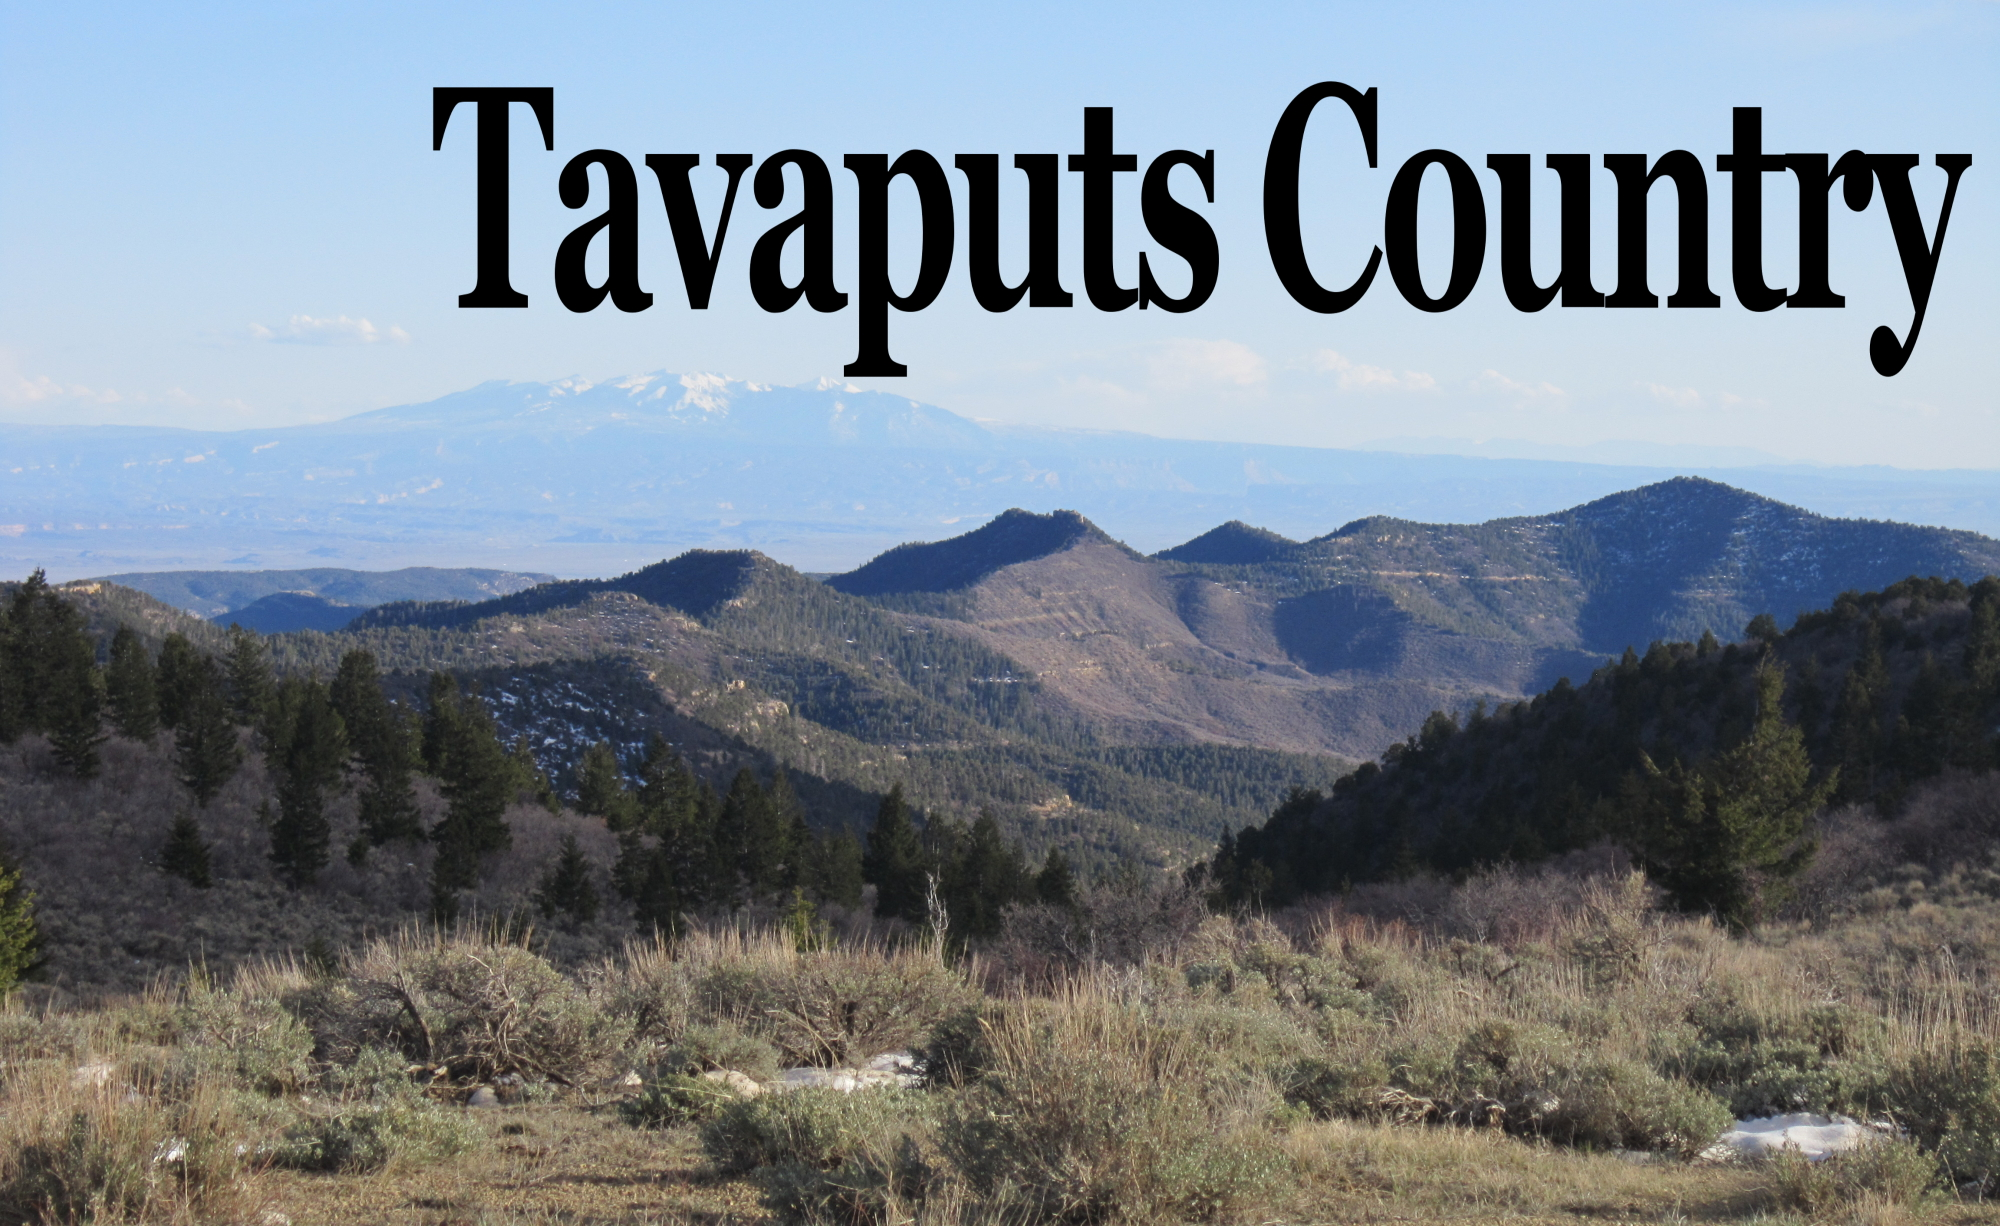 tavaputs country